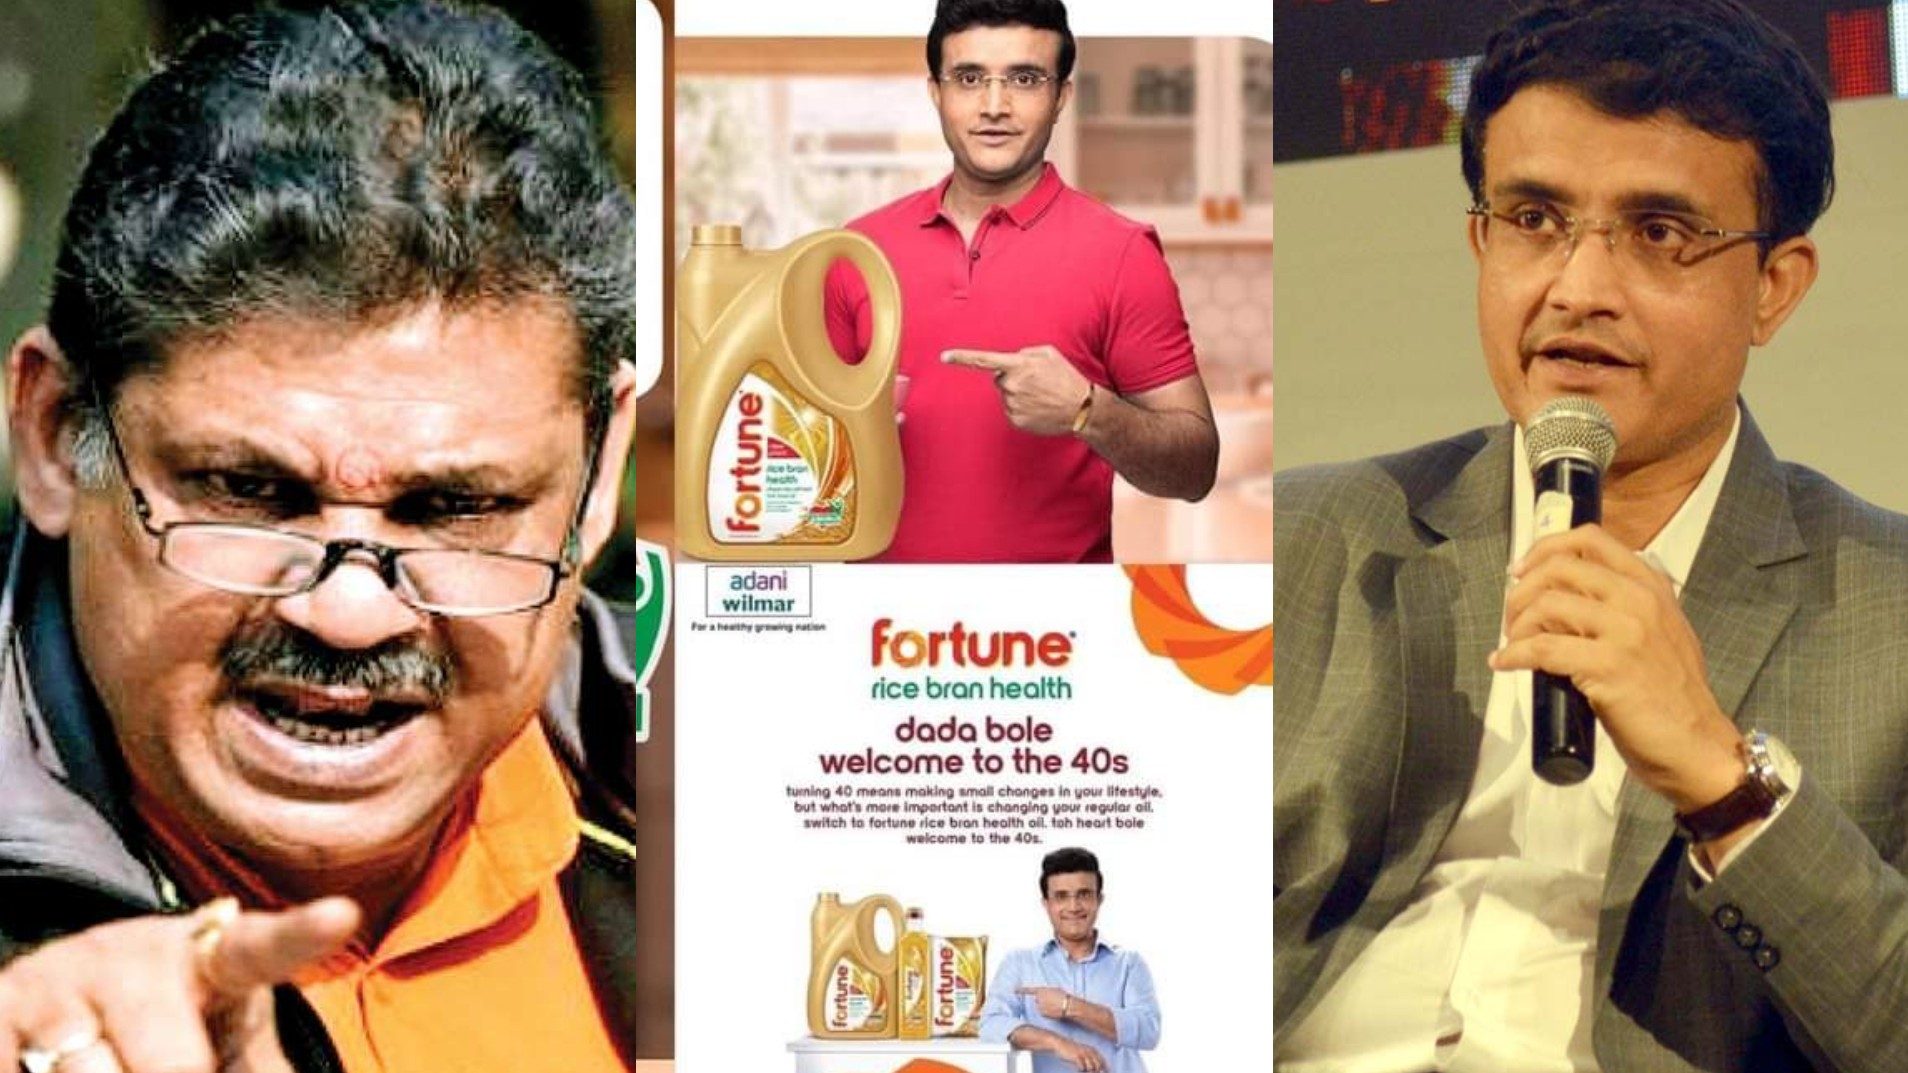 Kirti Azad takes a dig at Sourav Ganguly's product endorsement while wishing him recovery